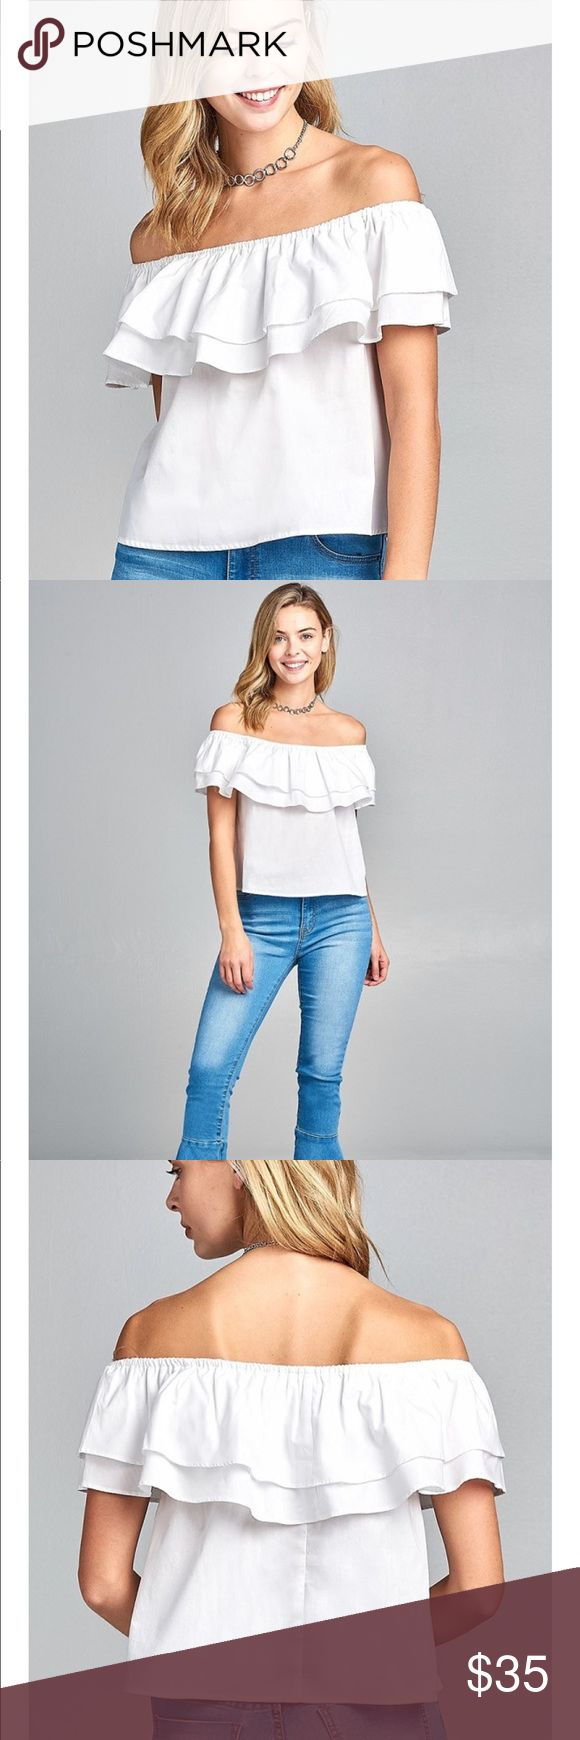 *COMING SOON* Double Ruffle Off Shoulder Top Double Ruffle Flounce Off Shoulder Top 100% Cotton  Lightweight & Perfect for Spring/Summer ☀️  Please feel free to comment and request a size 👍 Tops